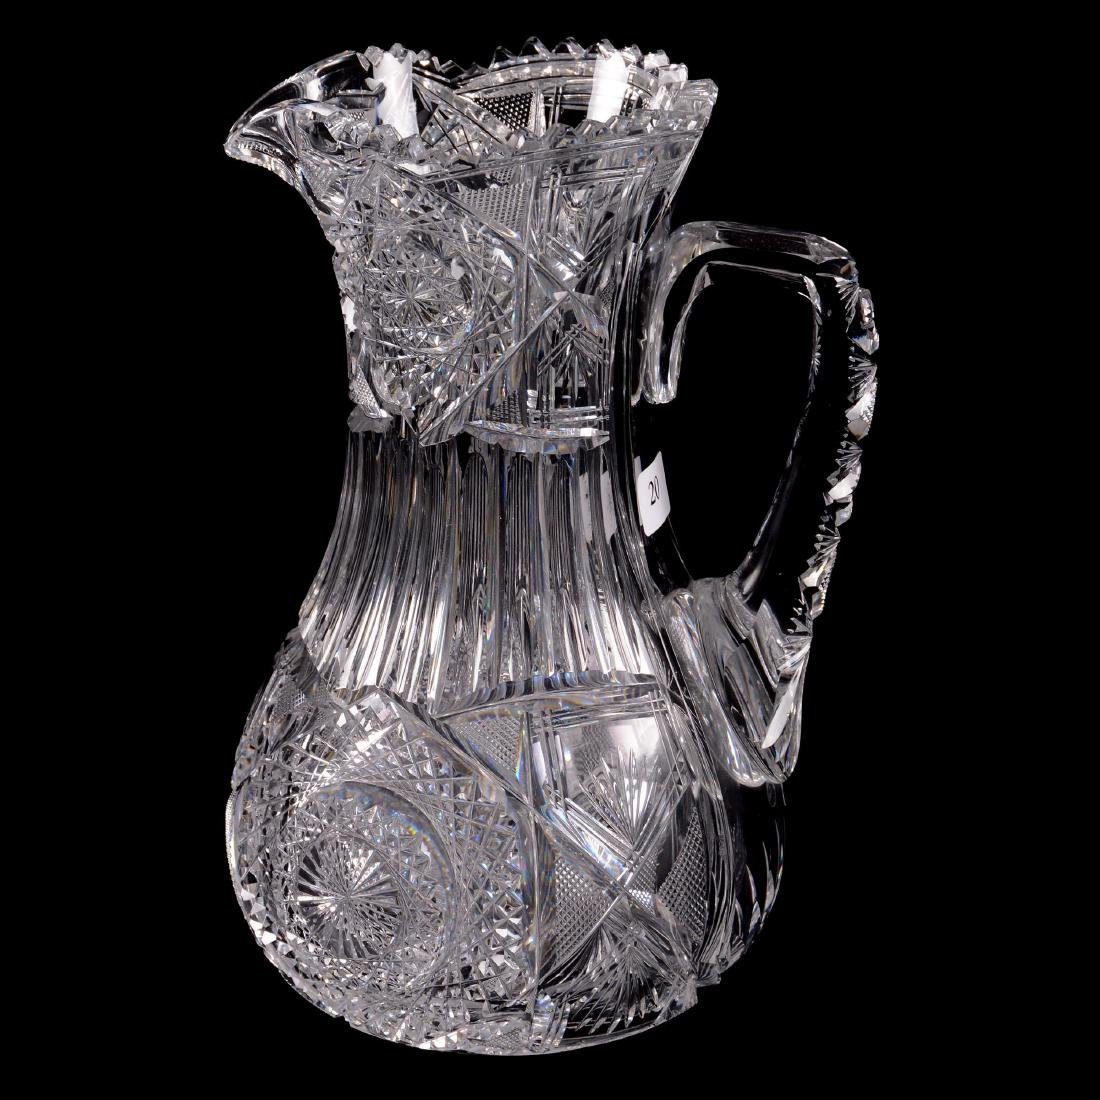 ABCG Water Pitcher - Alpine Pattern by J. Hoare